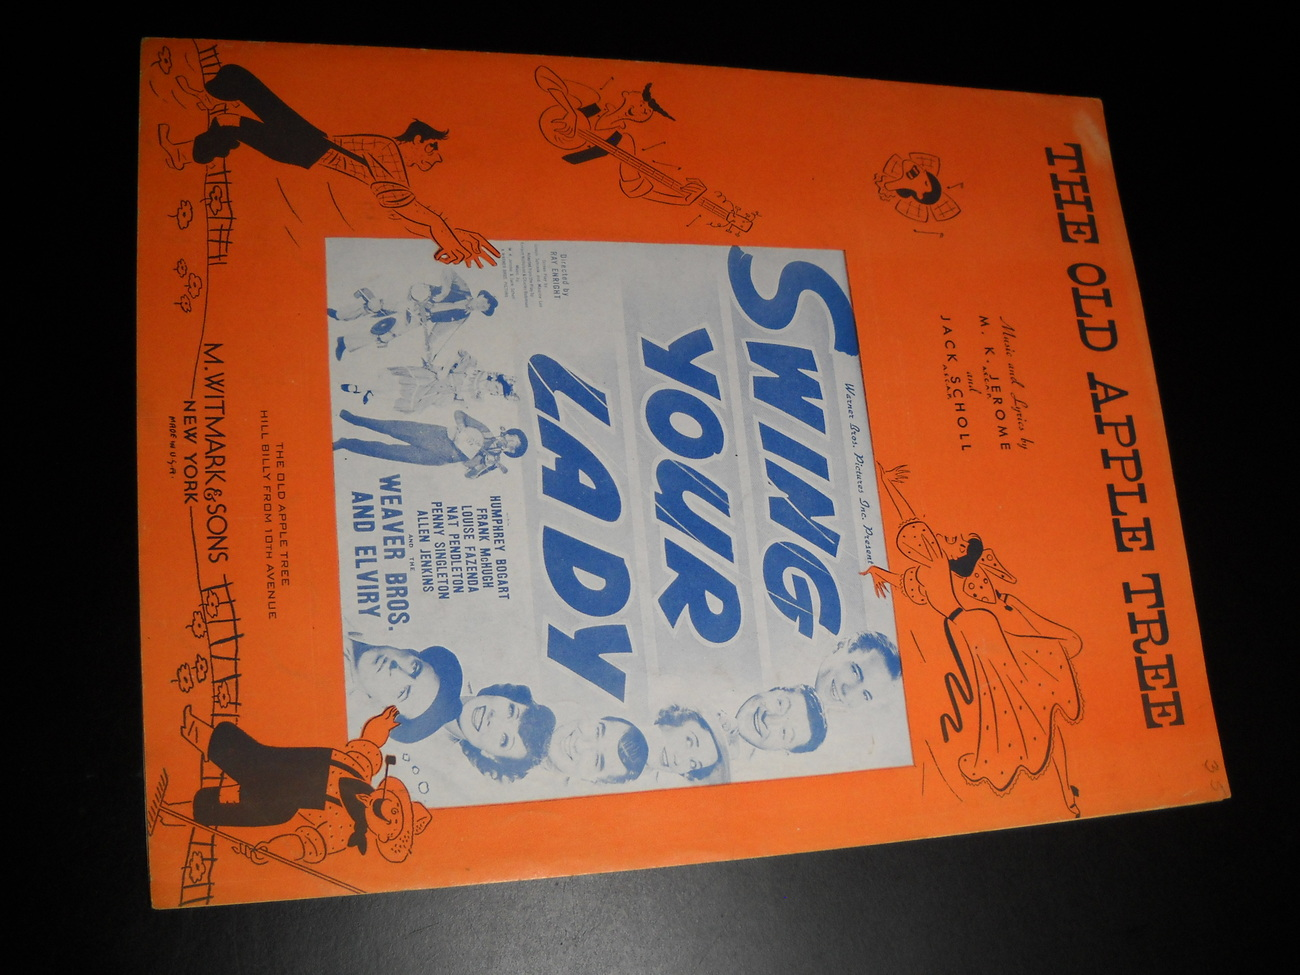 Sheet_music_the_old_apple_tree_swing_your_lady_humphrey_bogart_1938_m_witmark_01